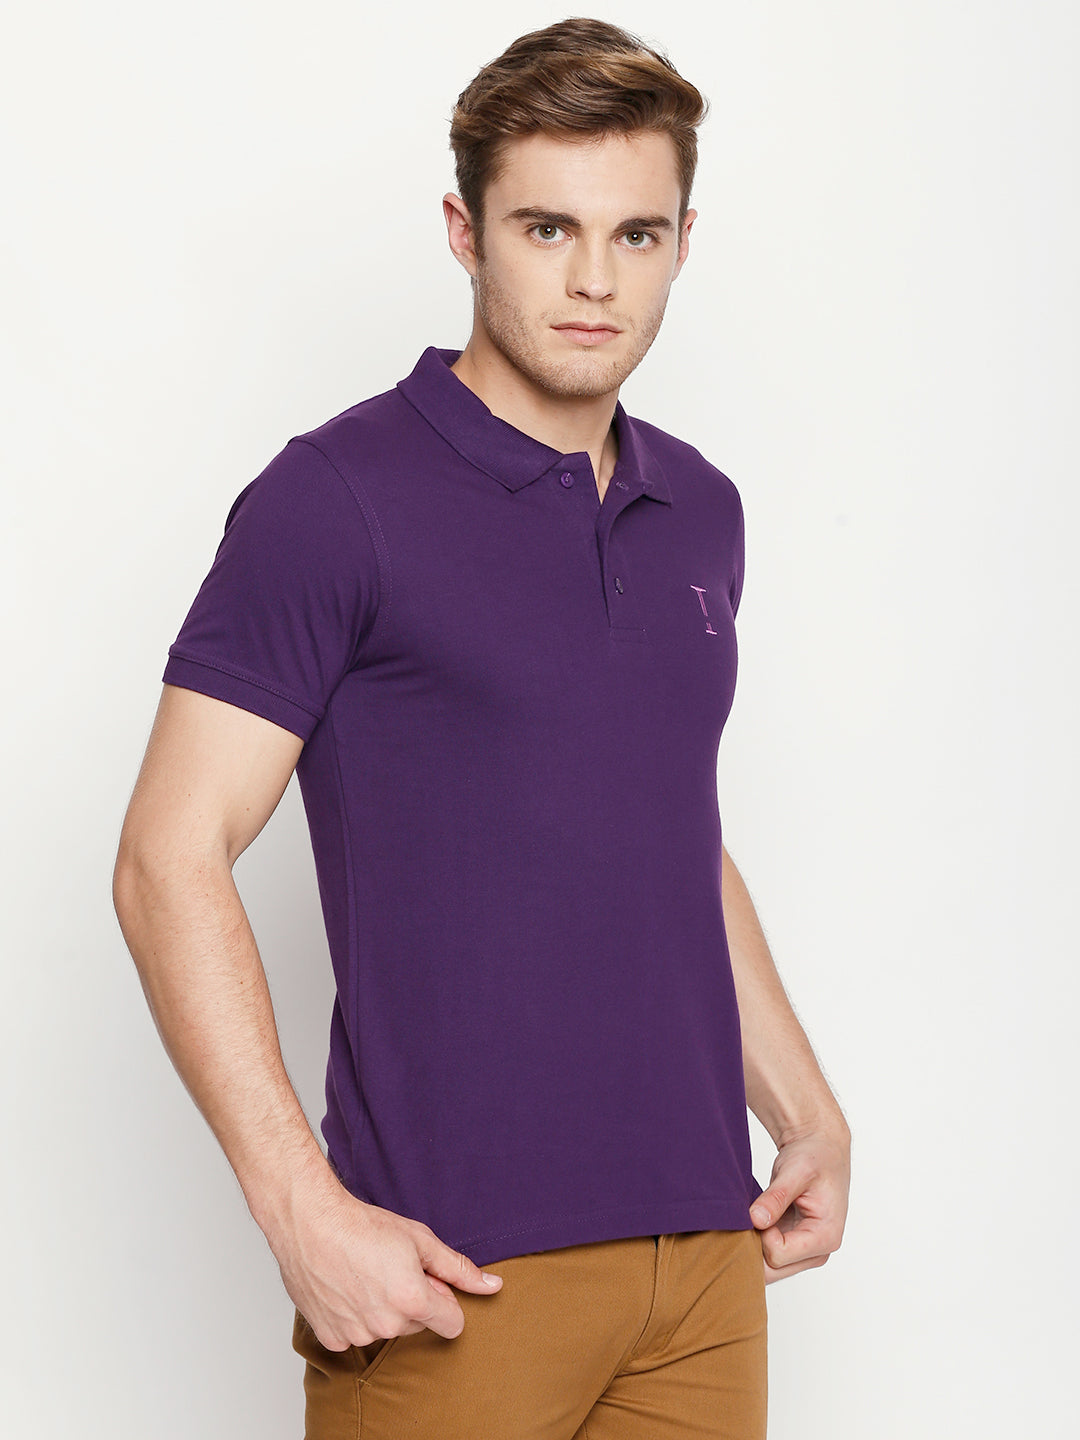 Berry Purple Solid Polo